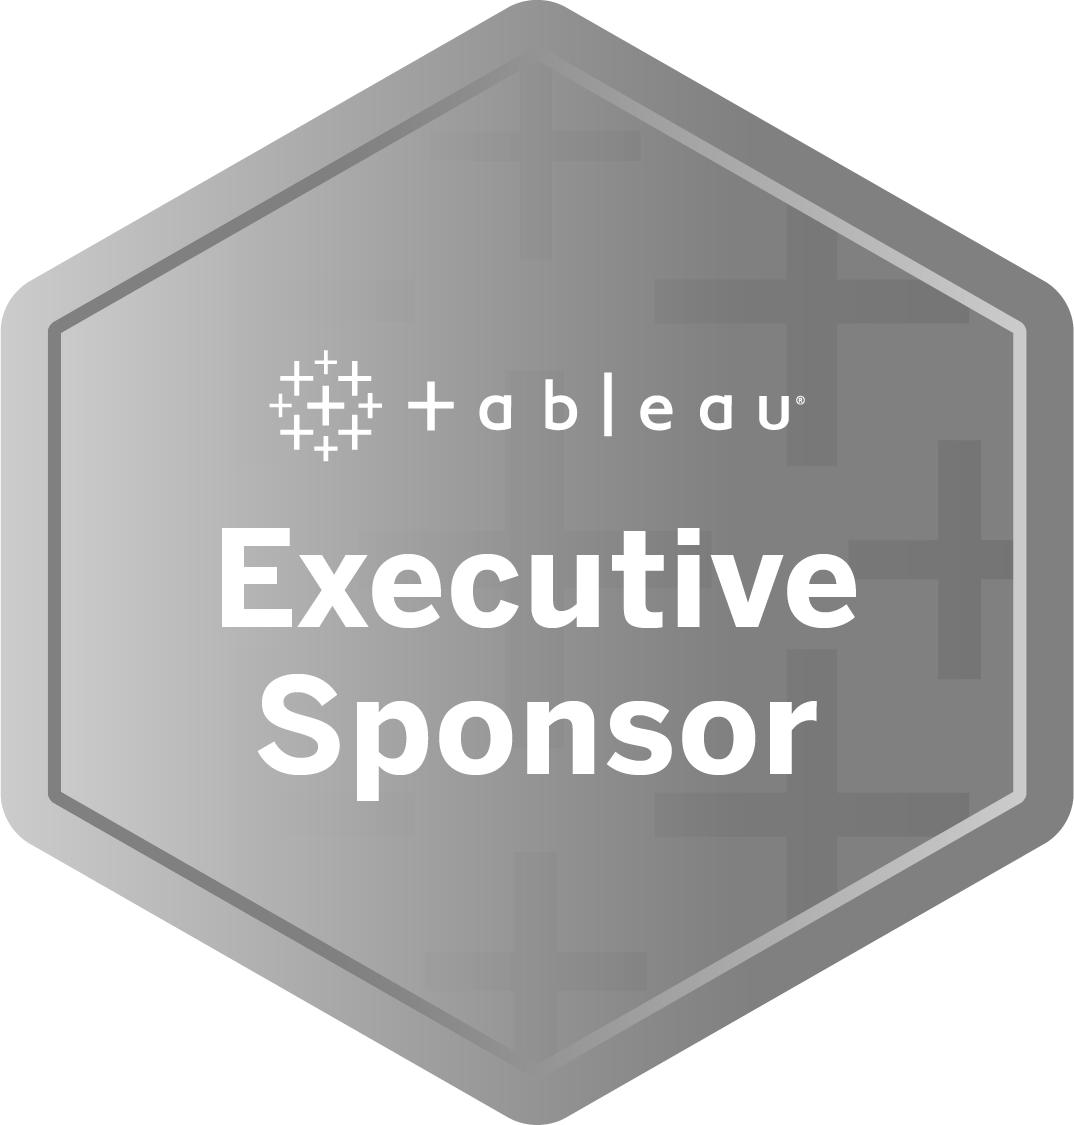 Executive Sponsor badge